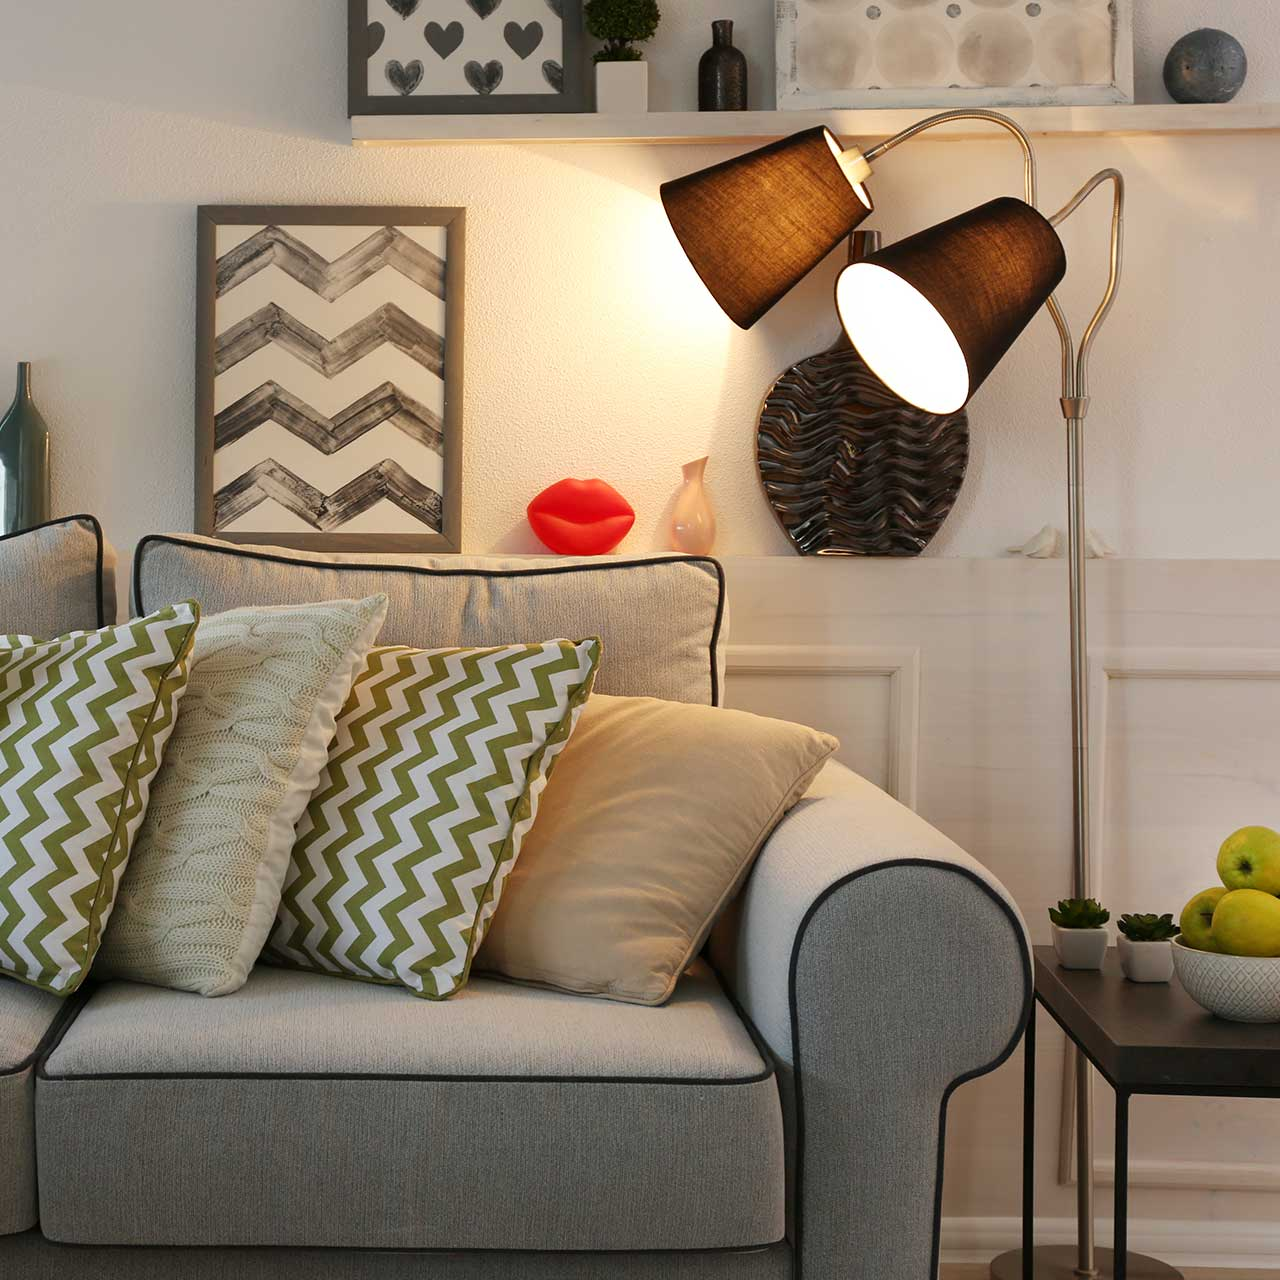 Choose floor lamps, table lamps, wall sconces are to create a cozy, warm atmosphere to living room interiors